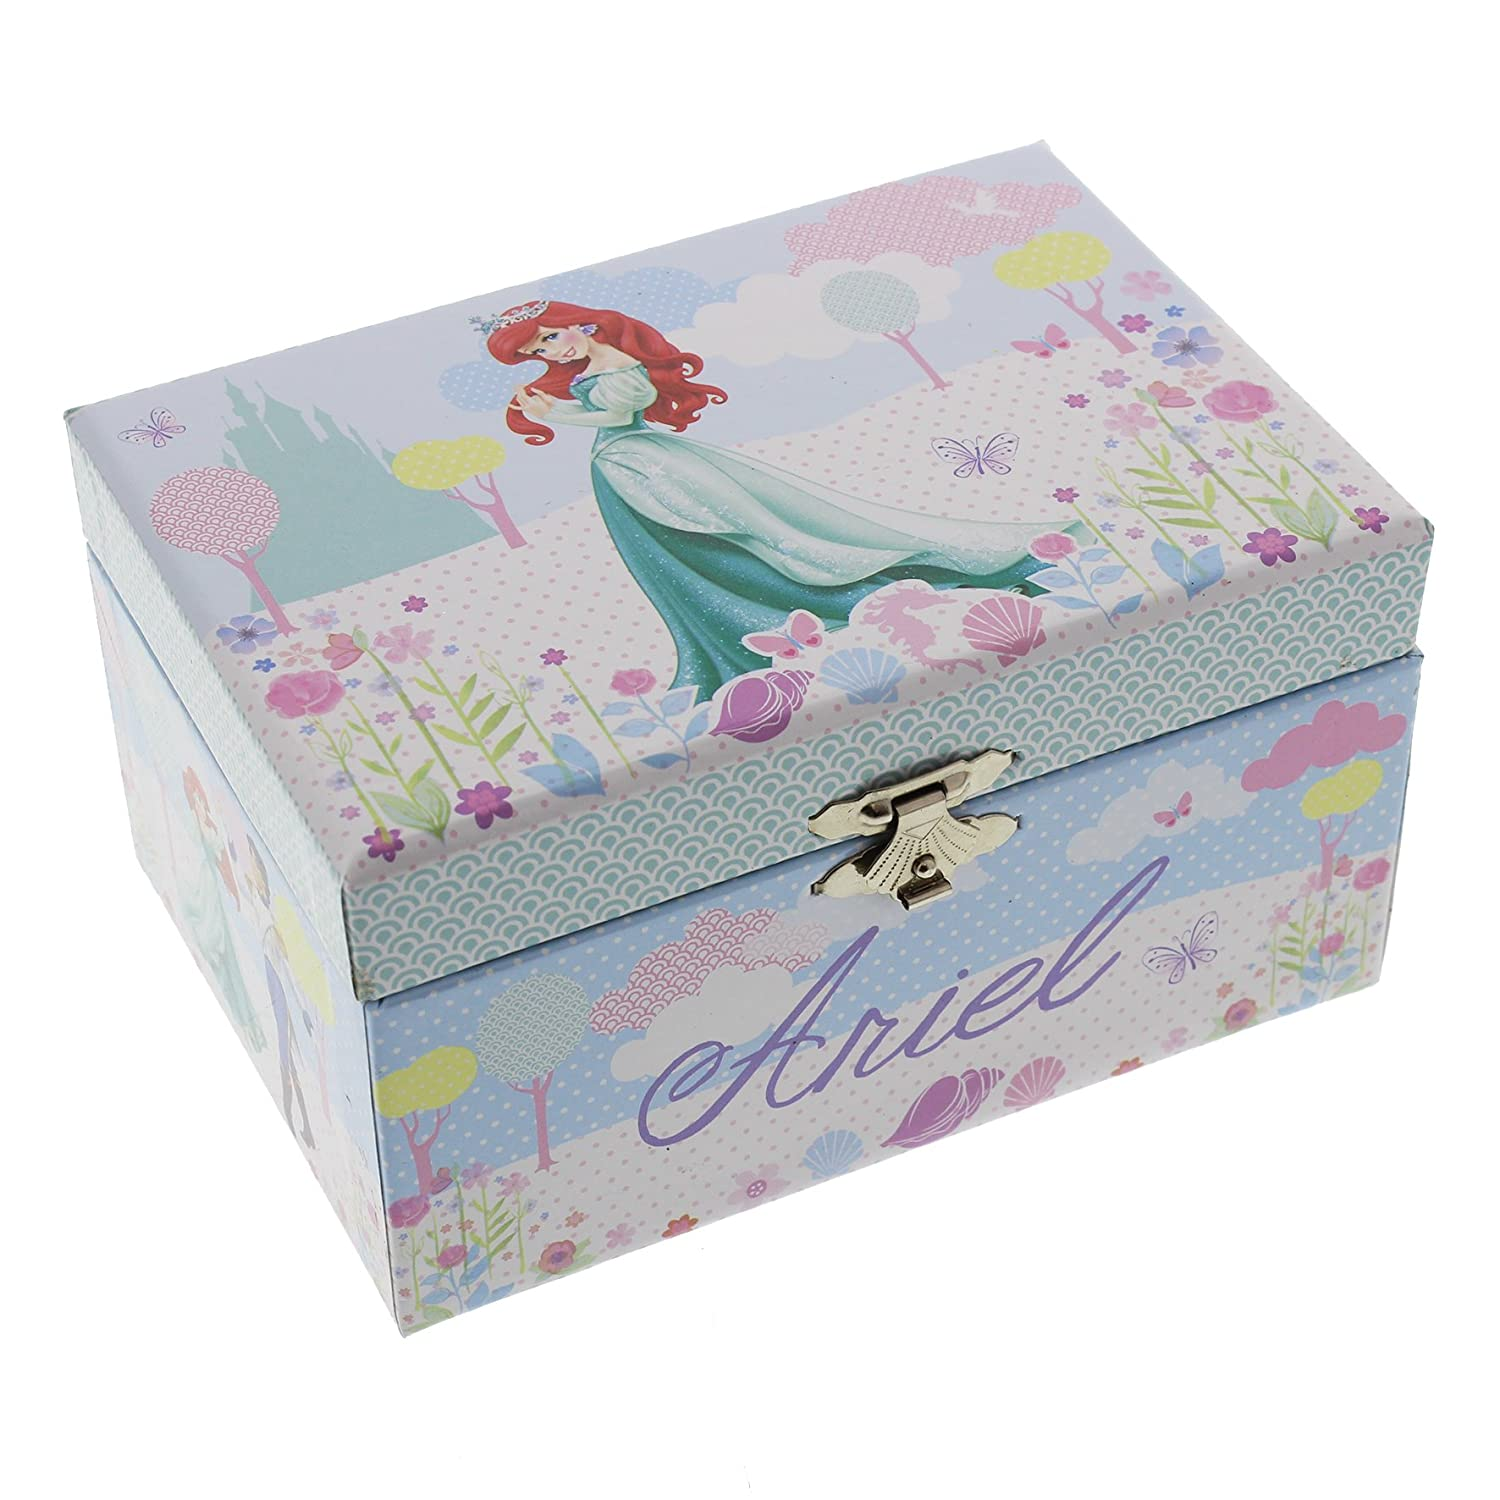 Disney Princess 15cm Musical Jewellery Box ARIEL Amazoncouk